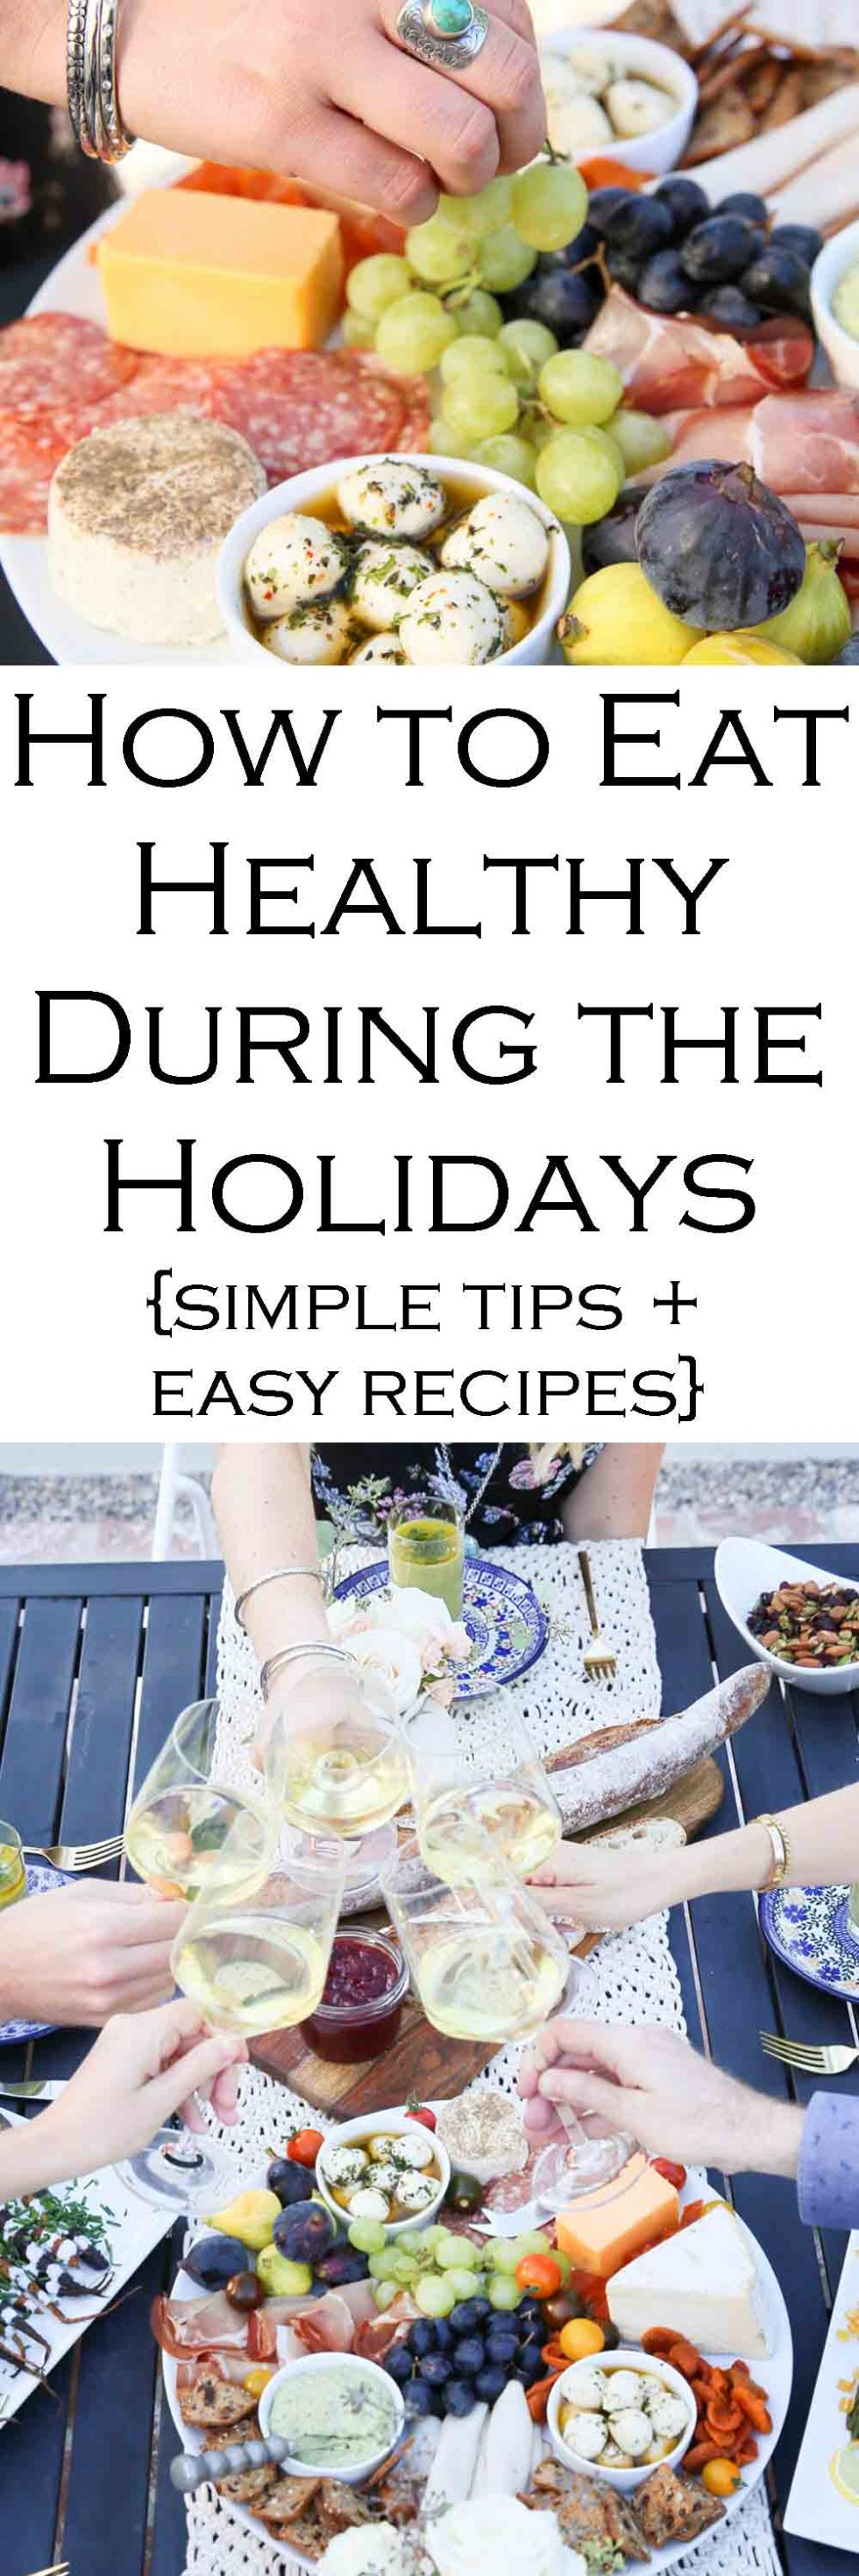 Healthy Holidays | How to Eat Healthy During the Holidays. Healthy Tips to Avoid Overeating. #recipes #healthy #holidays #holidayseason #healthythanksgiving #thanksgivingrecipes #healthychristmasrecipes #christmasparty #christmaspartyrecipes #LMrecipes #healthytips #healthtips